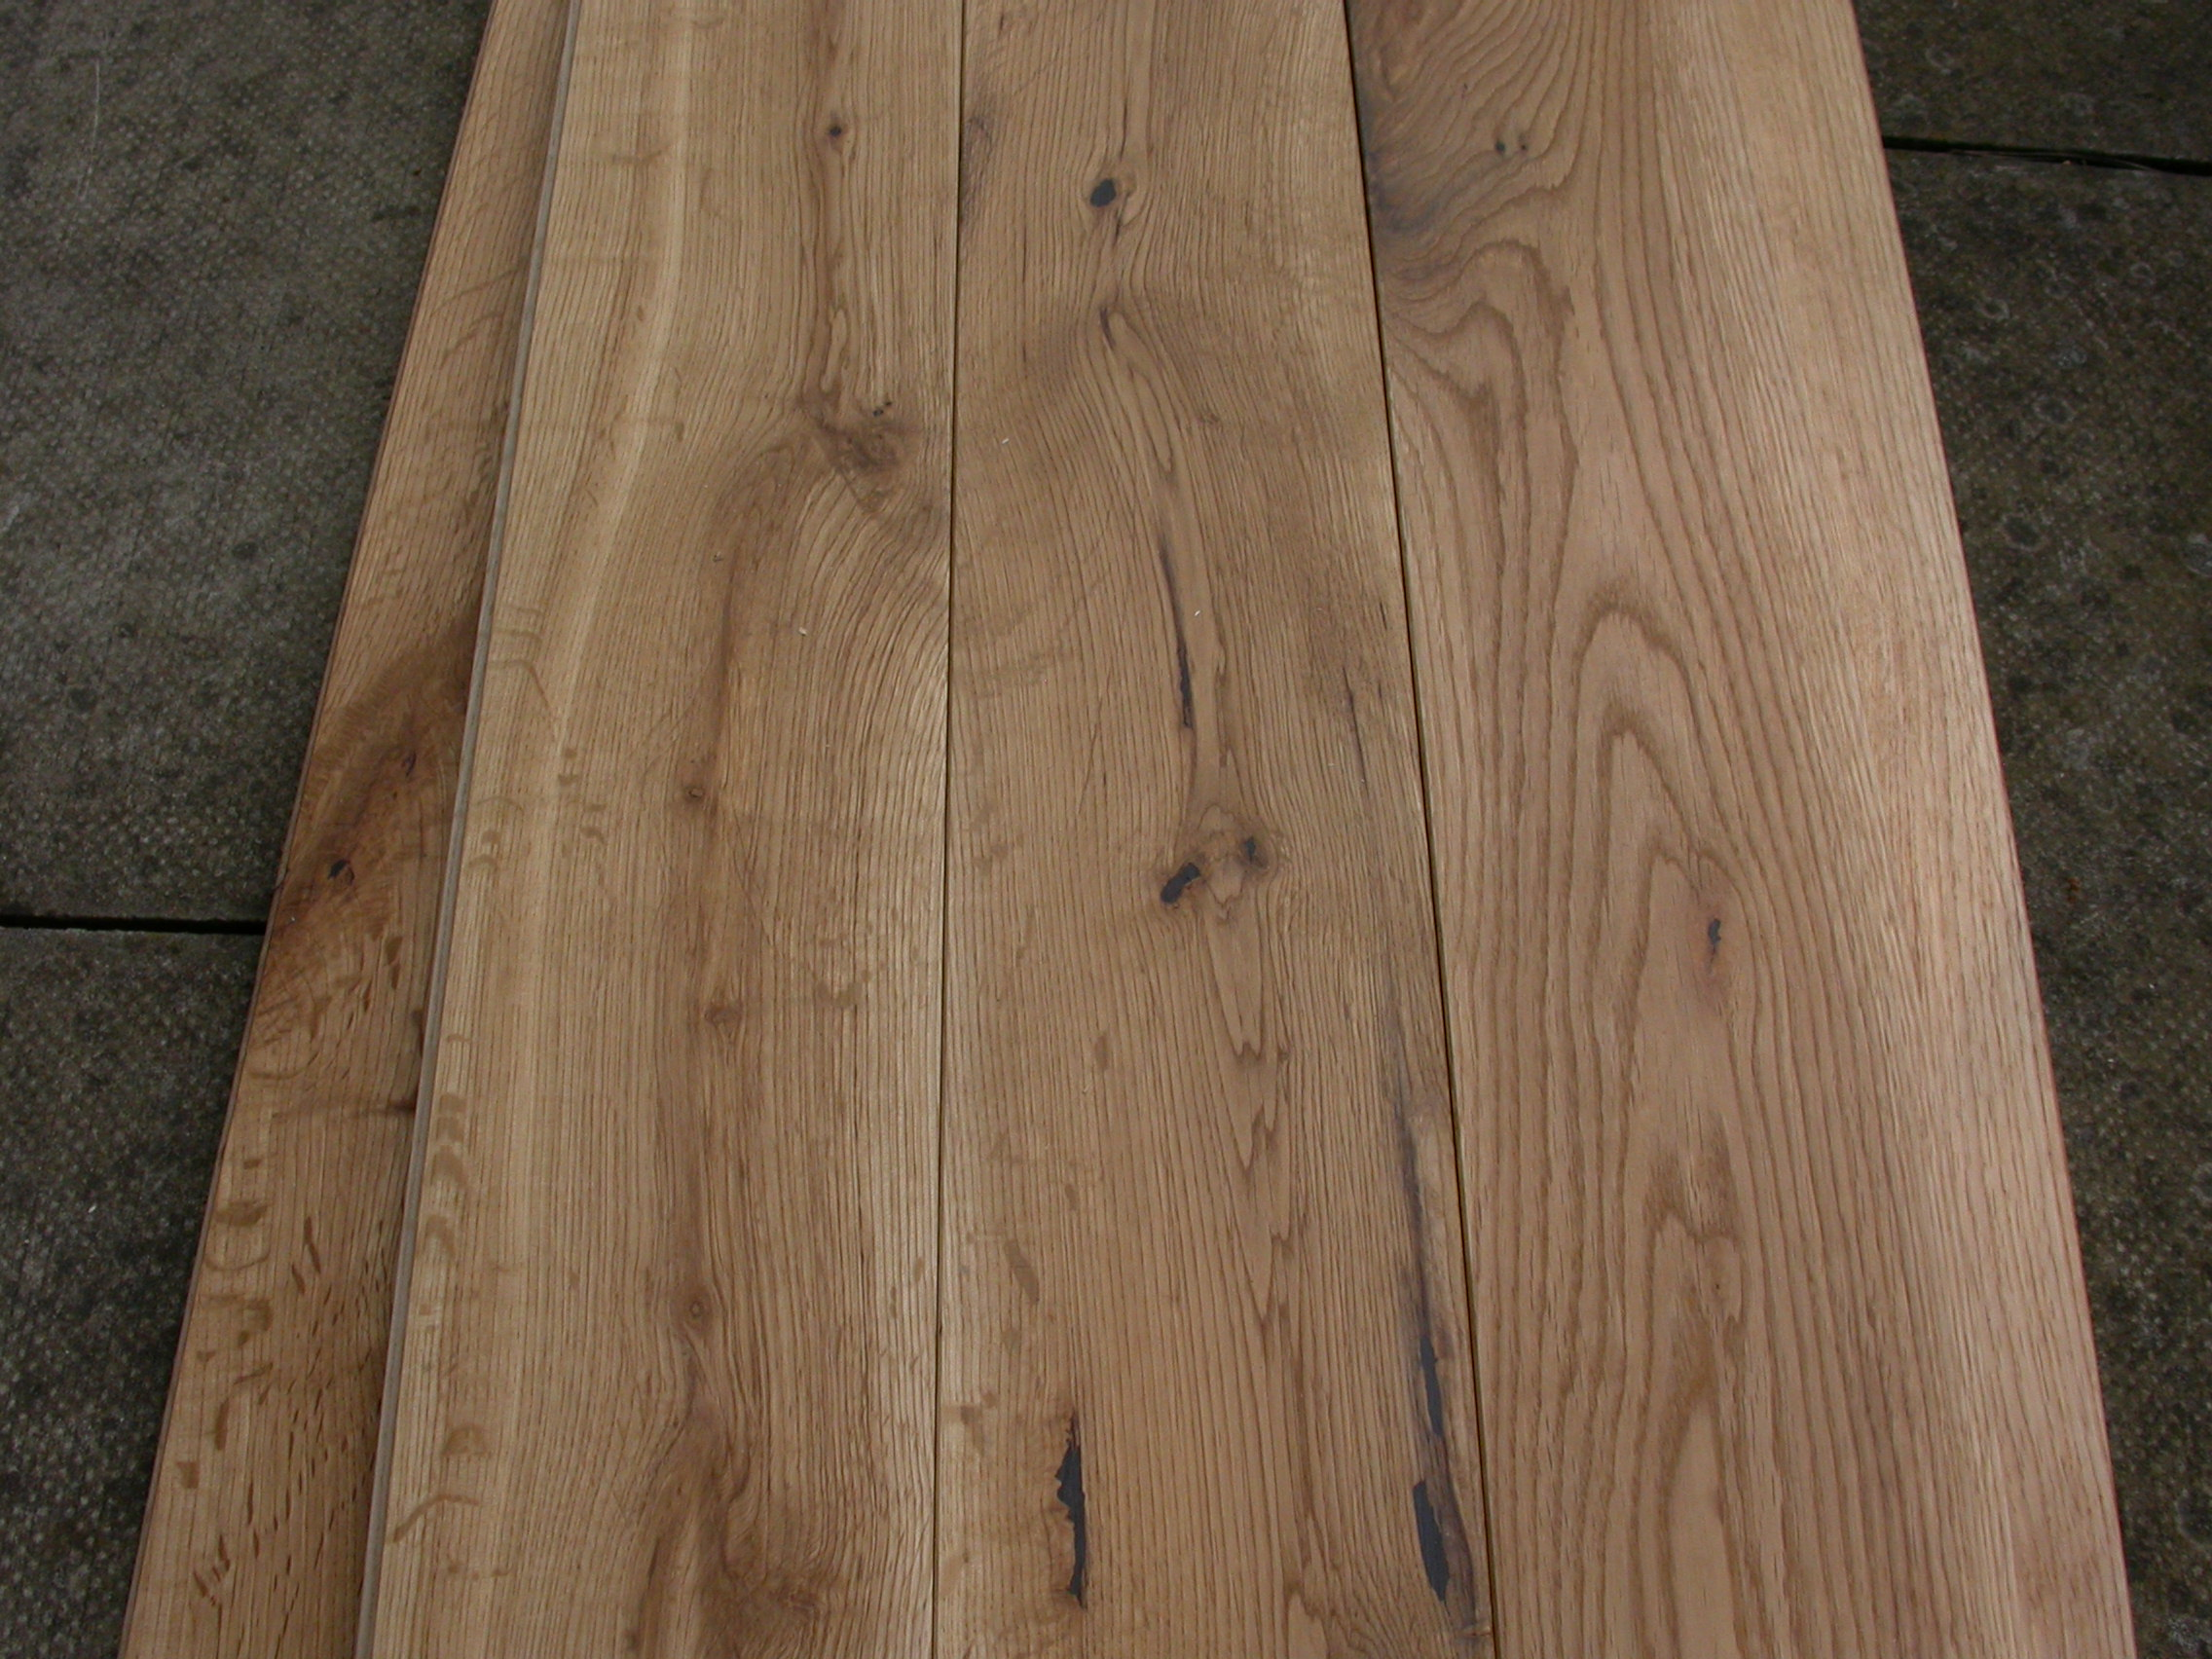 OAK RUSTIC OILED 120